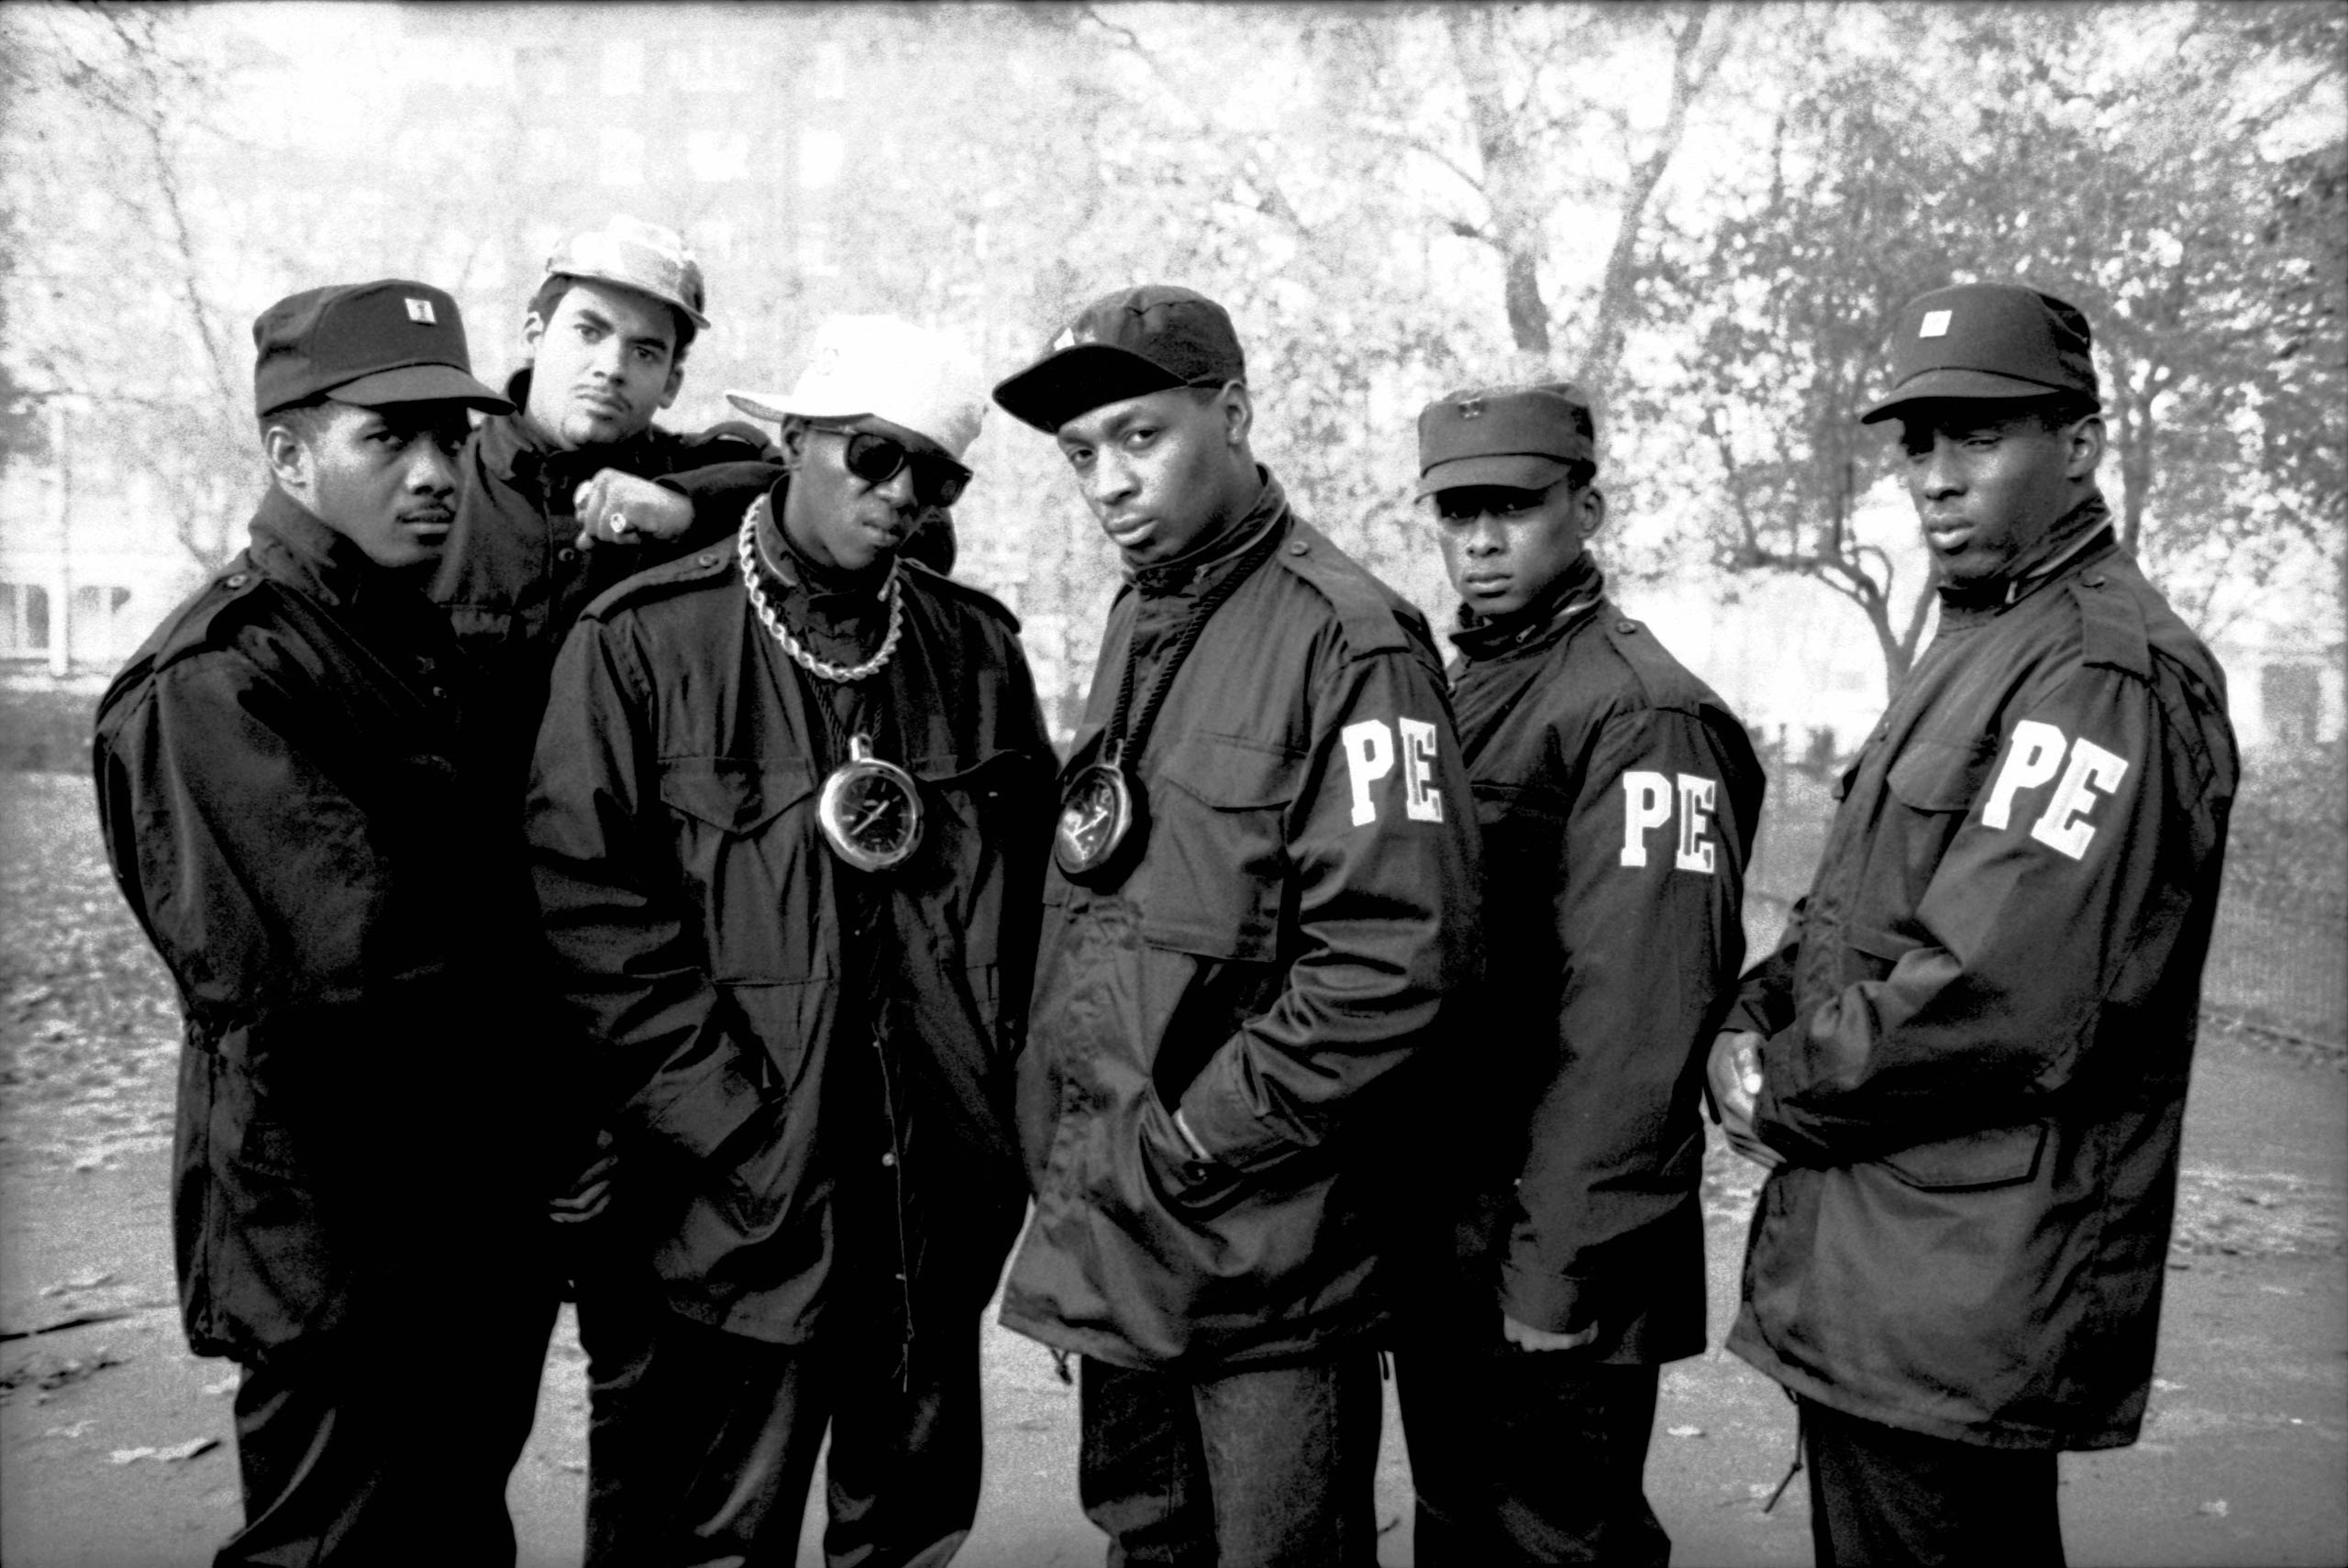 <strong>Public Enemy</strong>